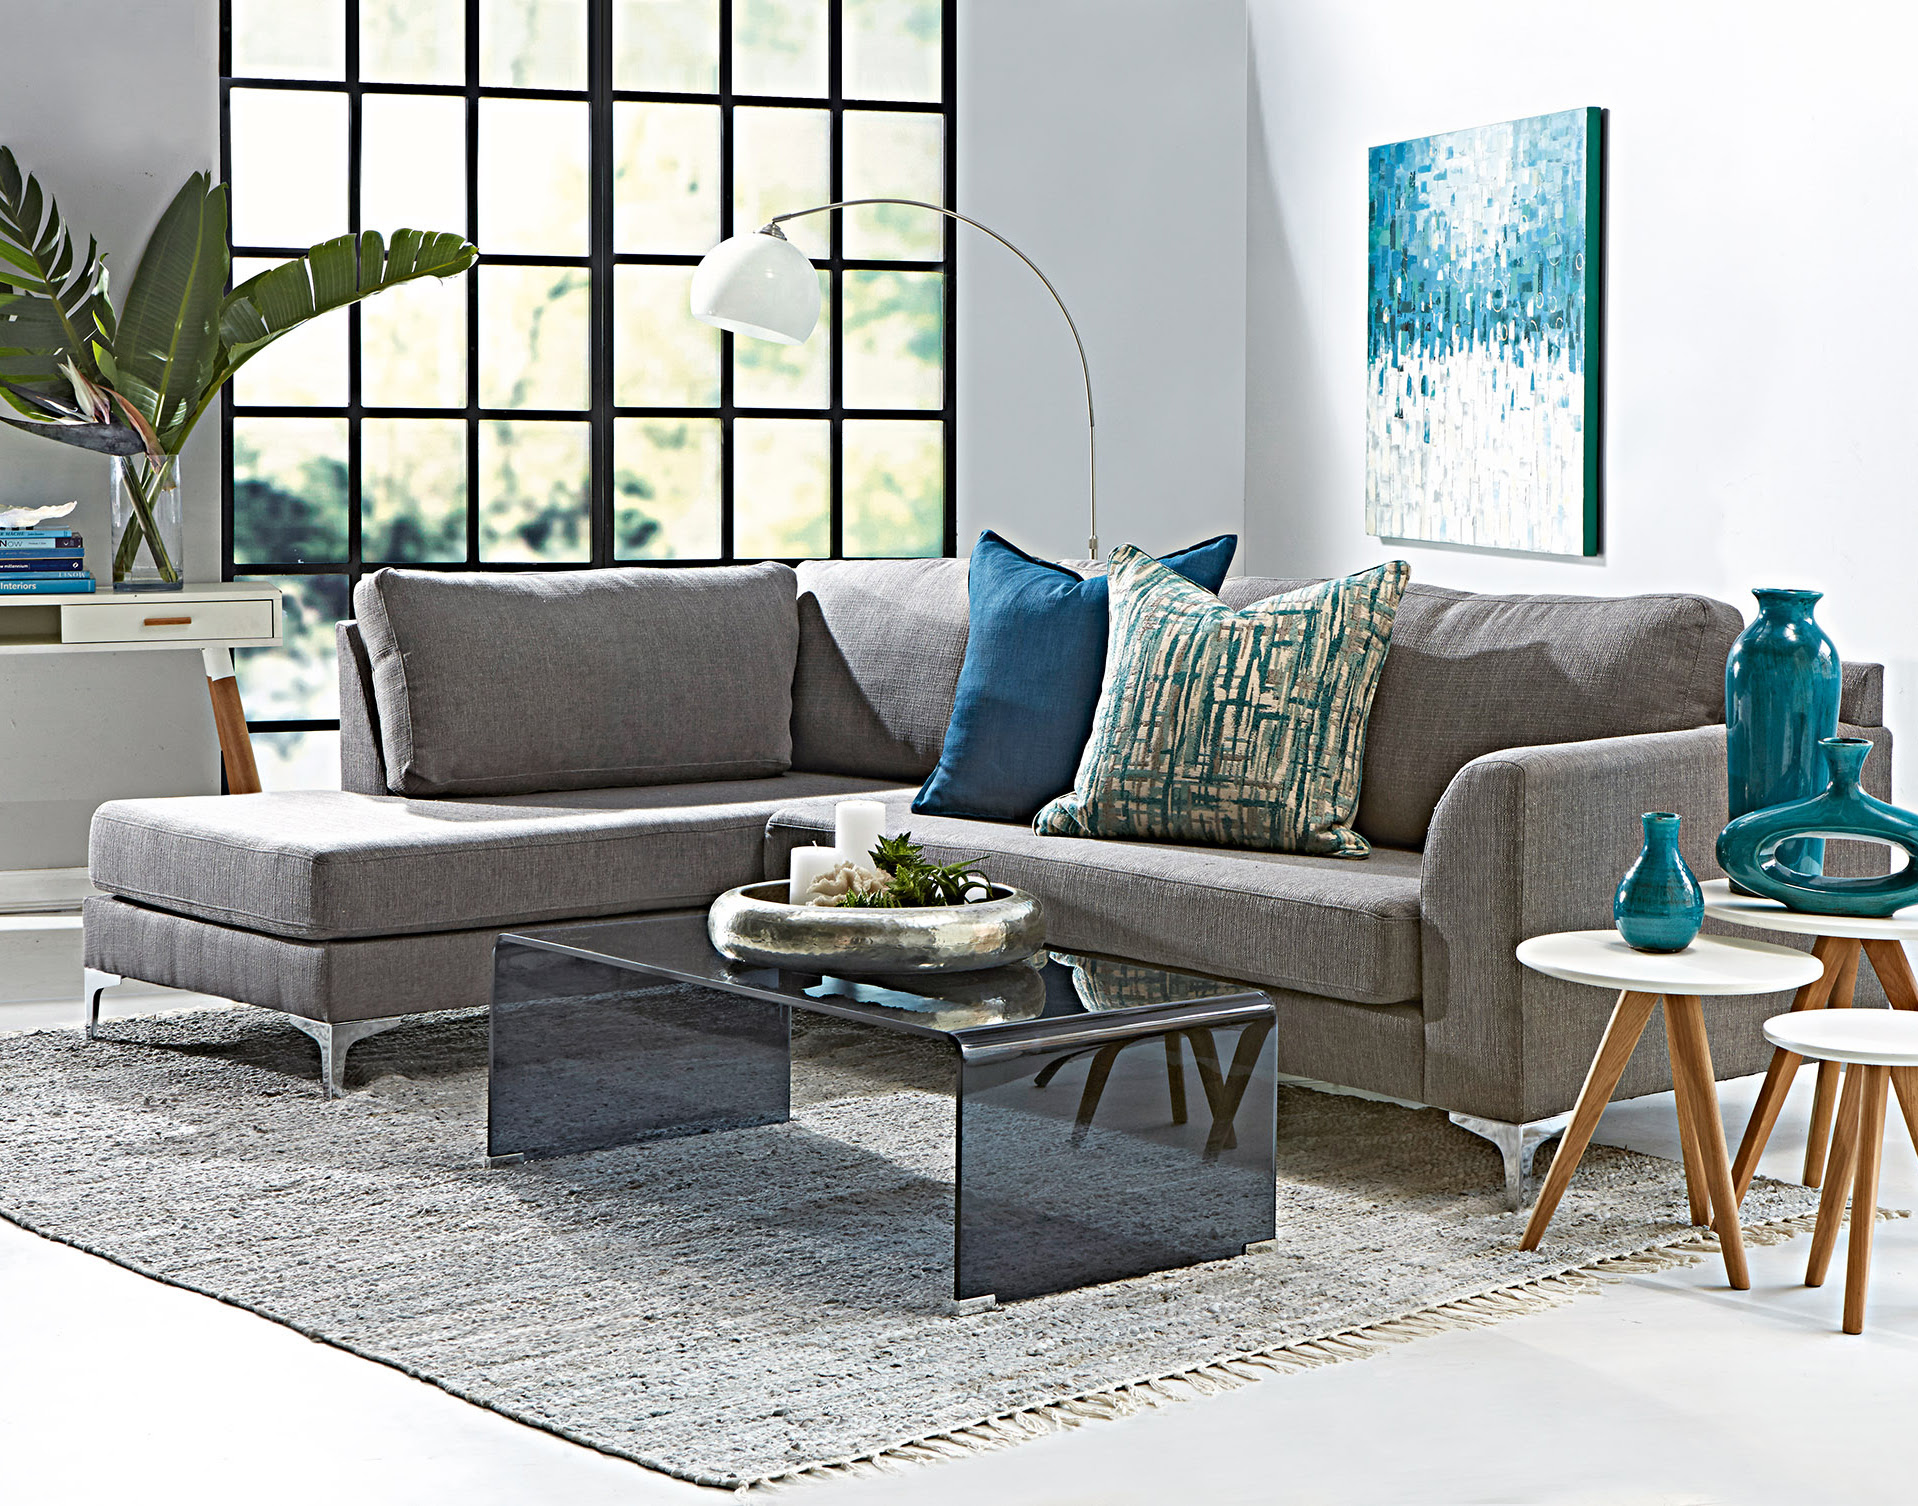 Mr Price Home Furniture Bedroom Farmers Sets Ideas Bathroom Bedding Couches Decor Candles Latest Boots Accessories Apppie Org